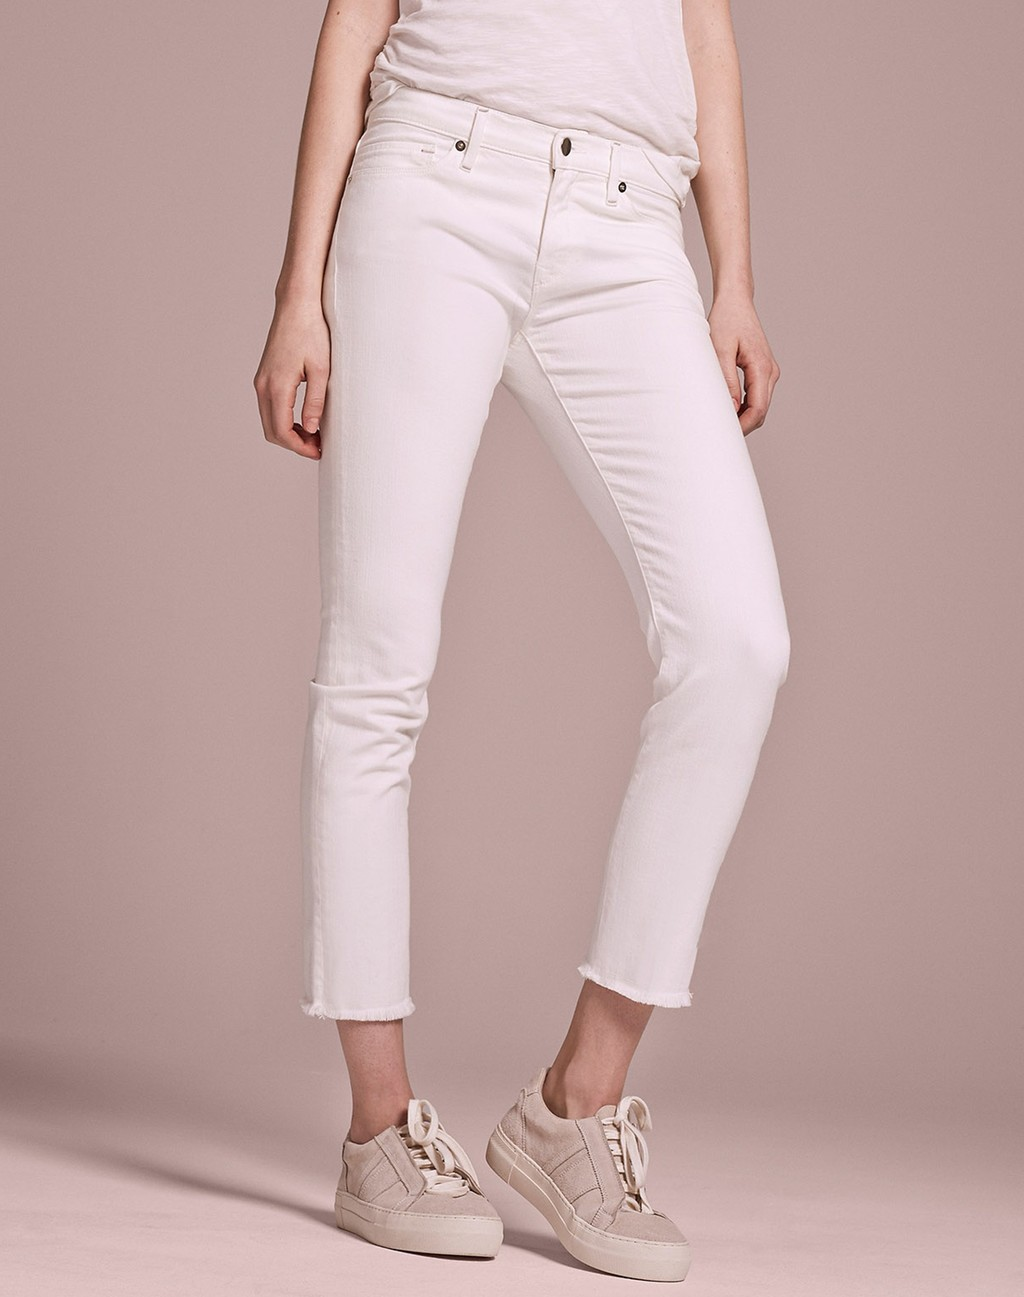 Fray Hem Slim Cropped Jean Ecru - pattern: plain; pocket detail: traditional 5 pocket; waist: mid/regular rise; predominant colour: white; occasions: casual; length: calf length; fibres: cotton - stretch; texture group: denim; fit: slim leg; pattern type: fabric; style: standard; season: s/s 2016; wardrobe: basic